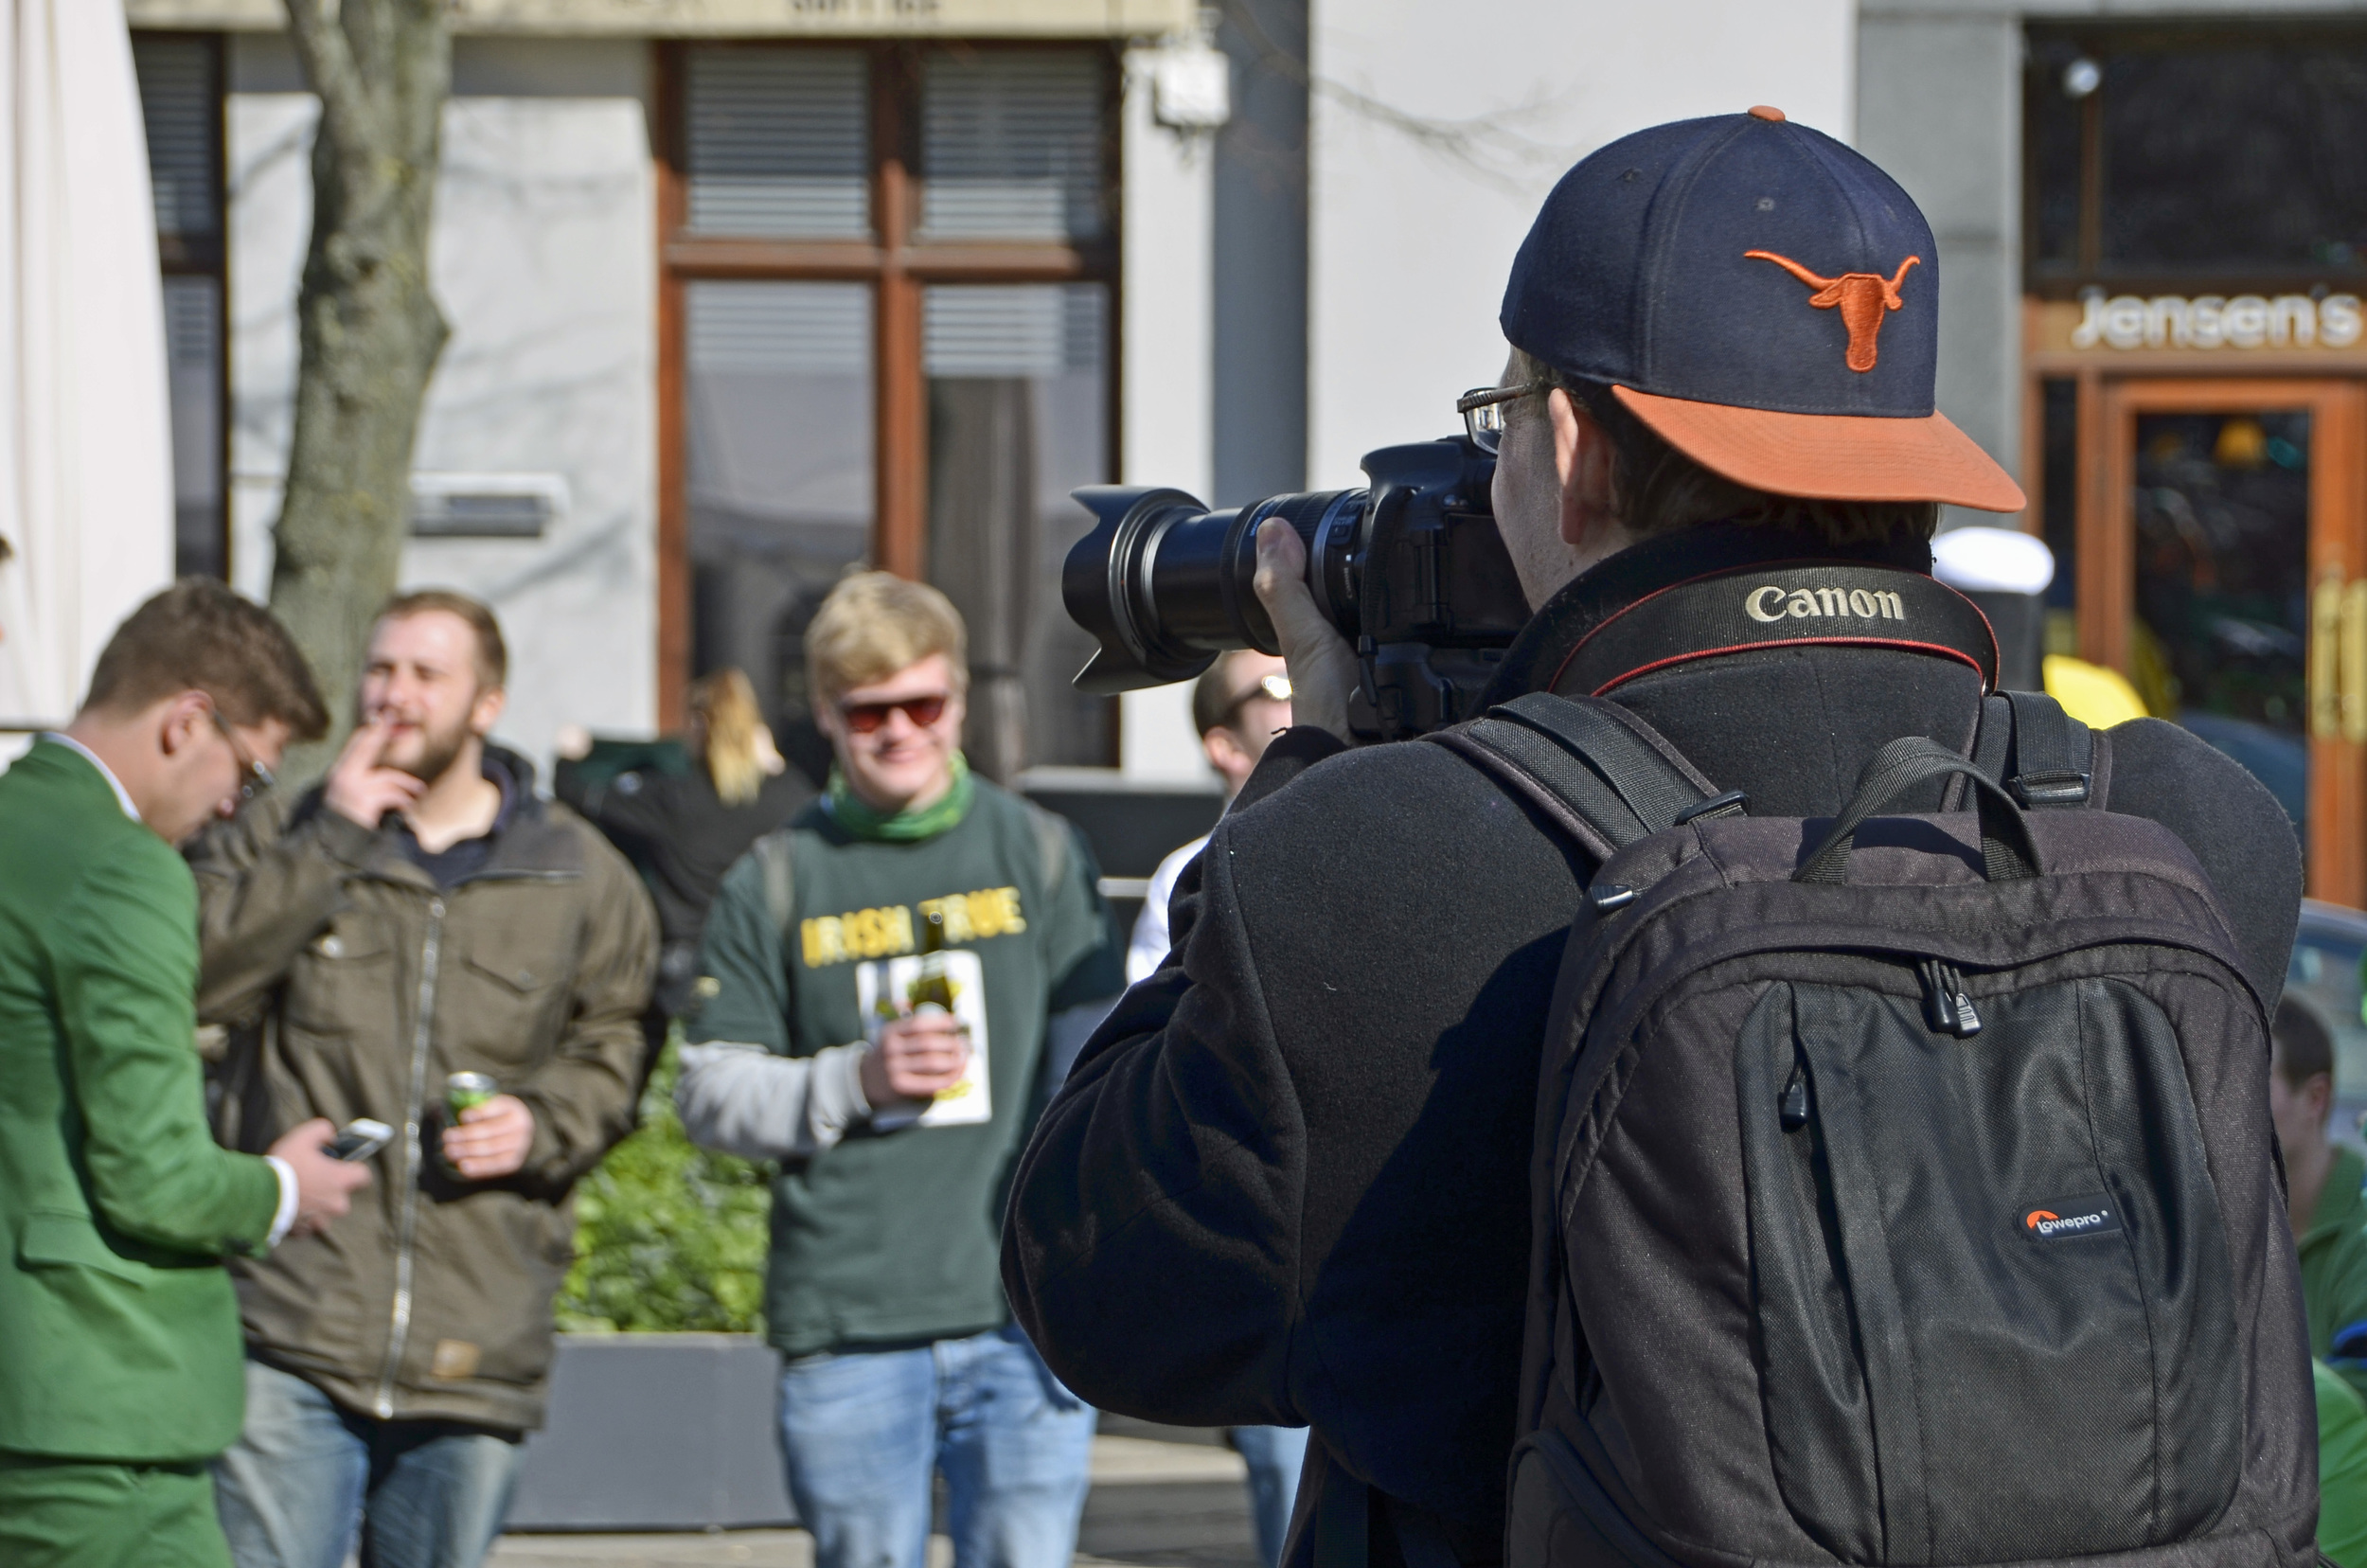 Of course when out and about with other photographers you run the risk of ending up in their pictures! Photo by Lars G Truedsson